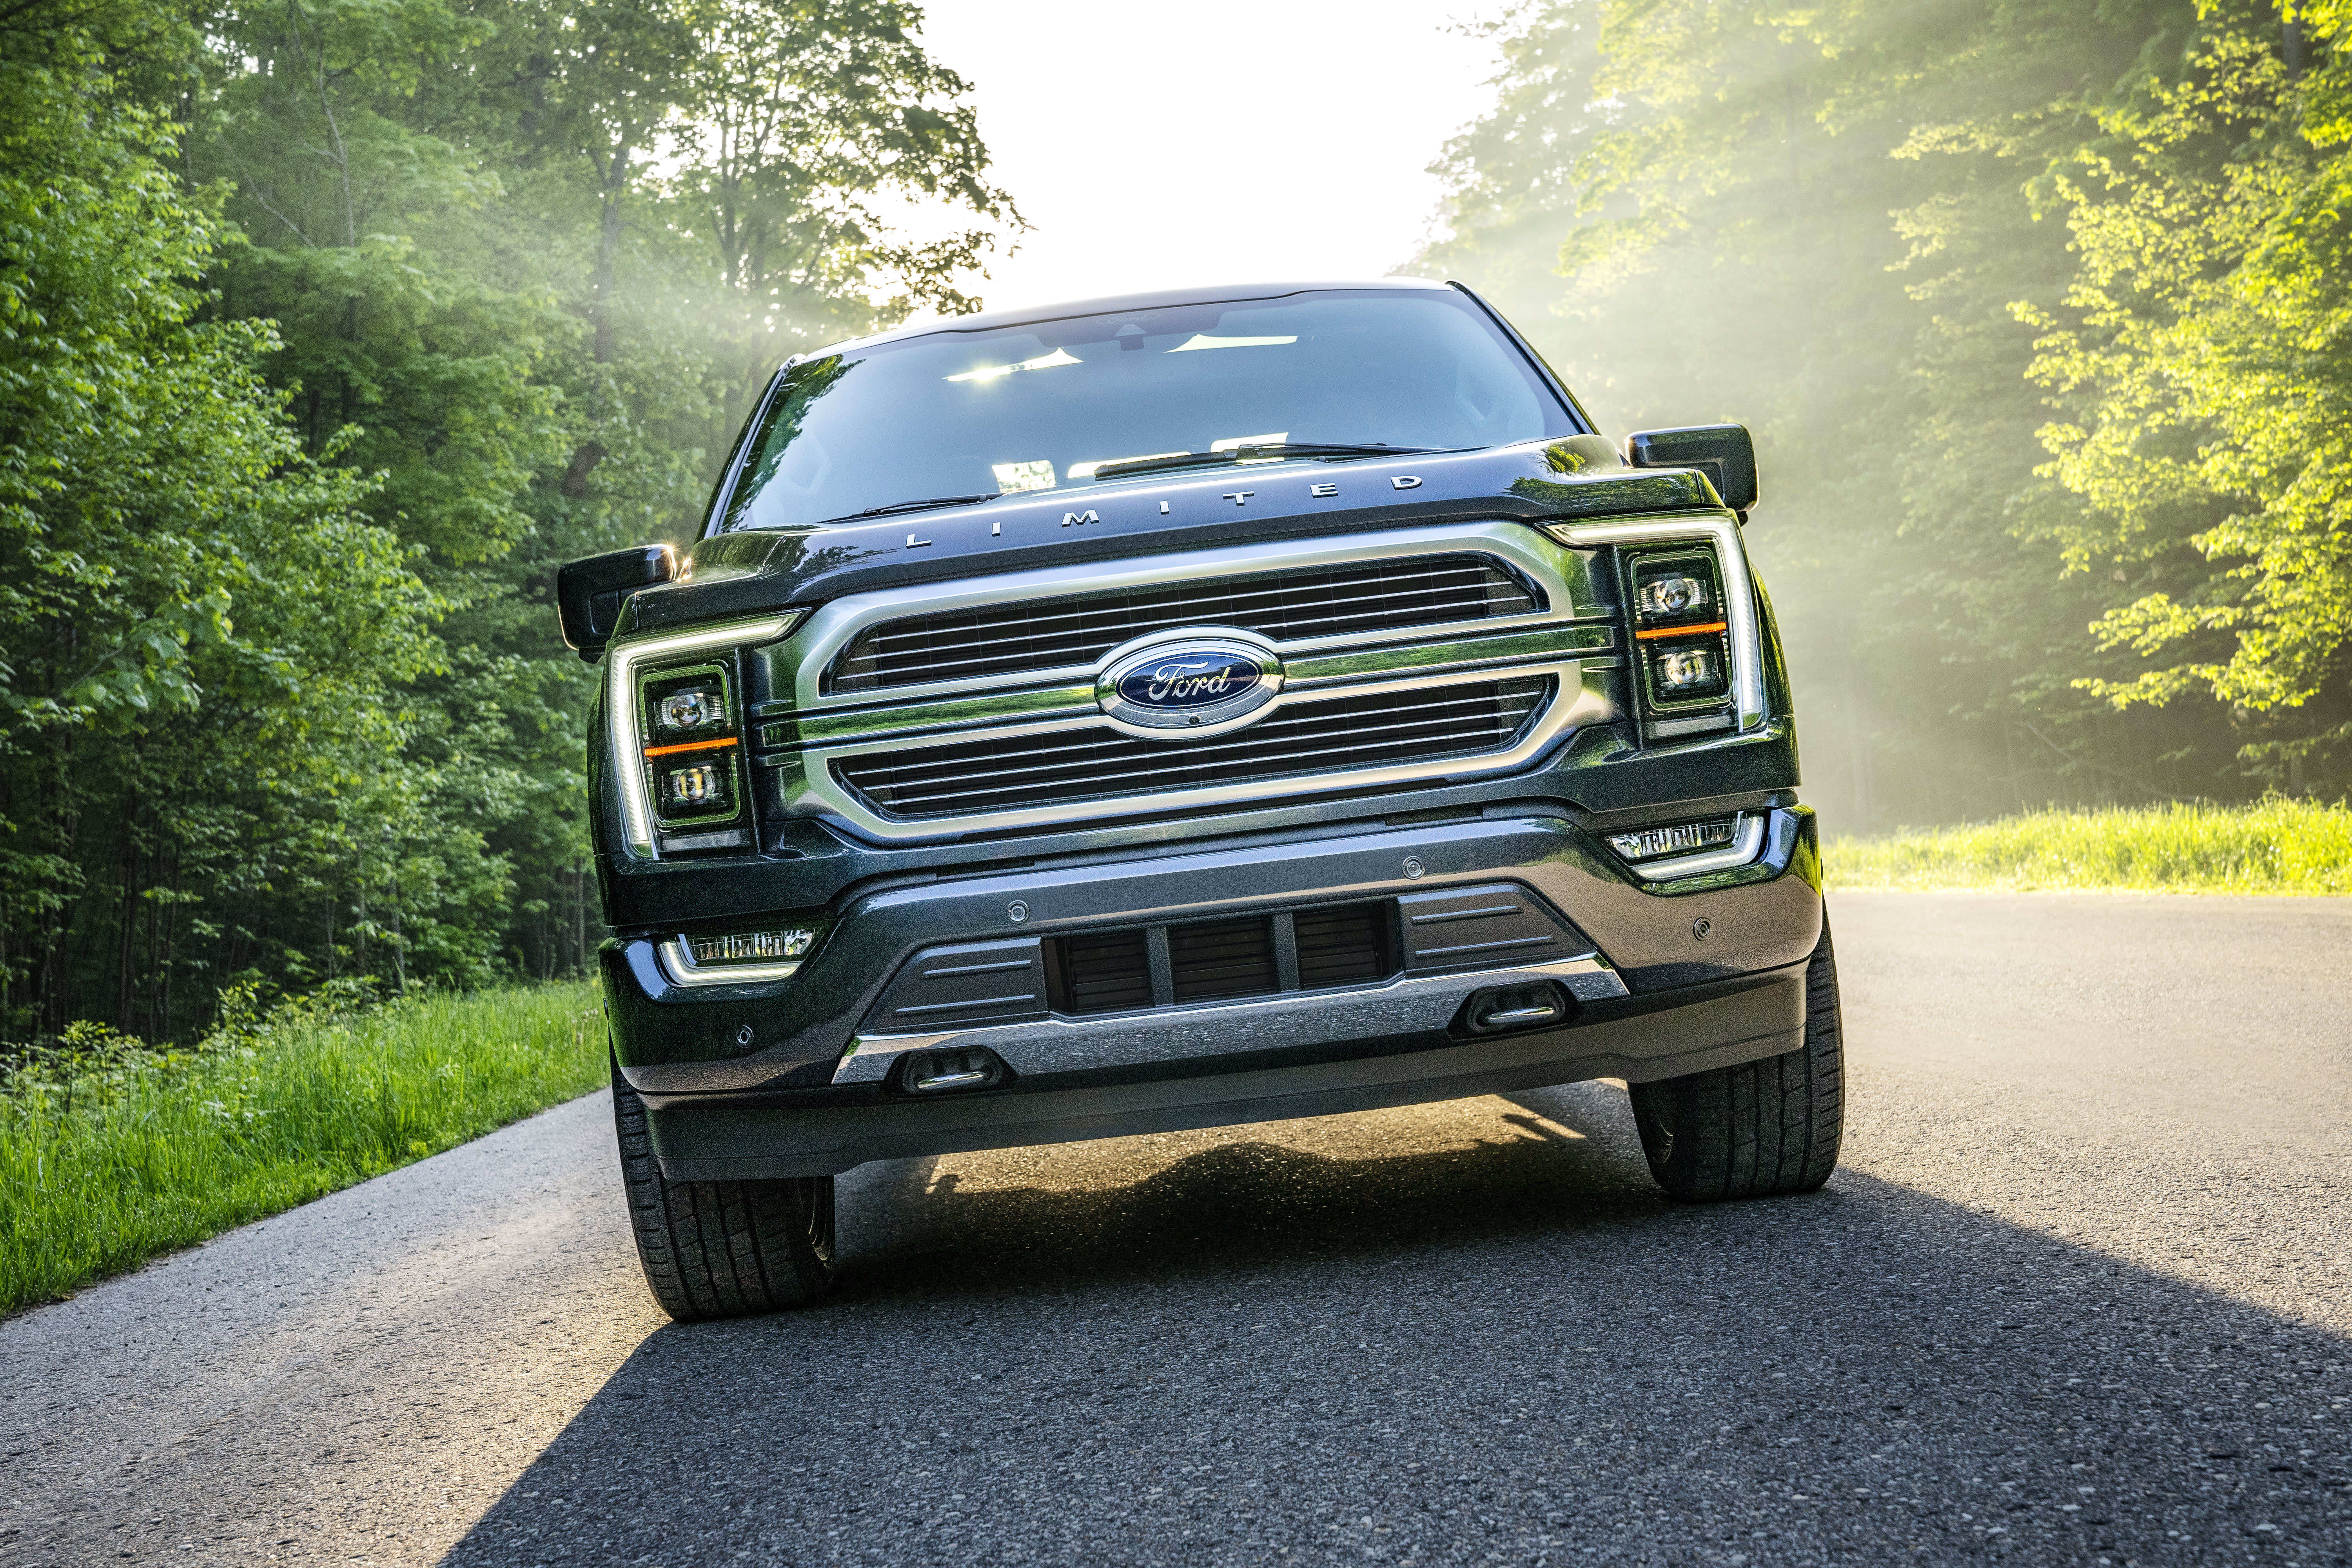 Ford unveils new F-150 as tech-savvy pickup with hands-free driving